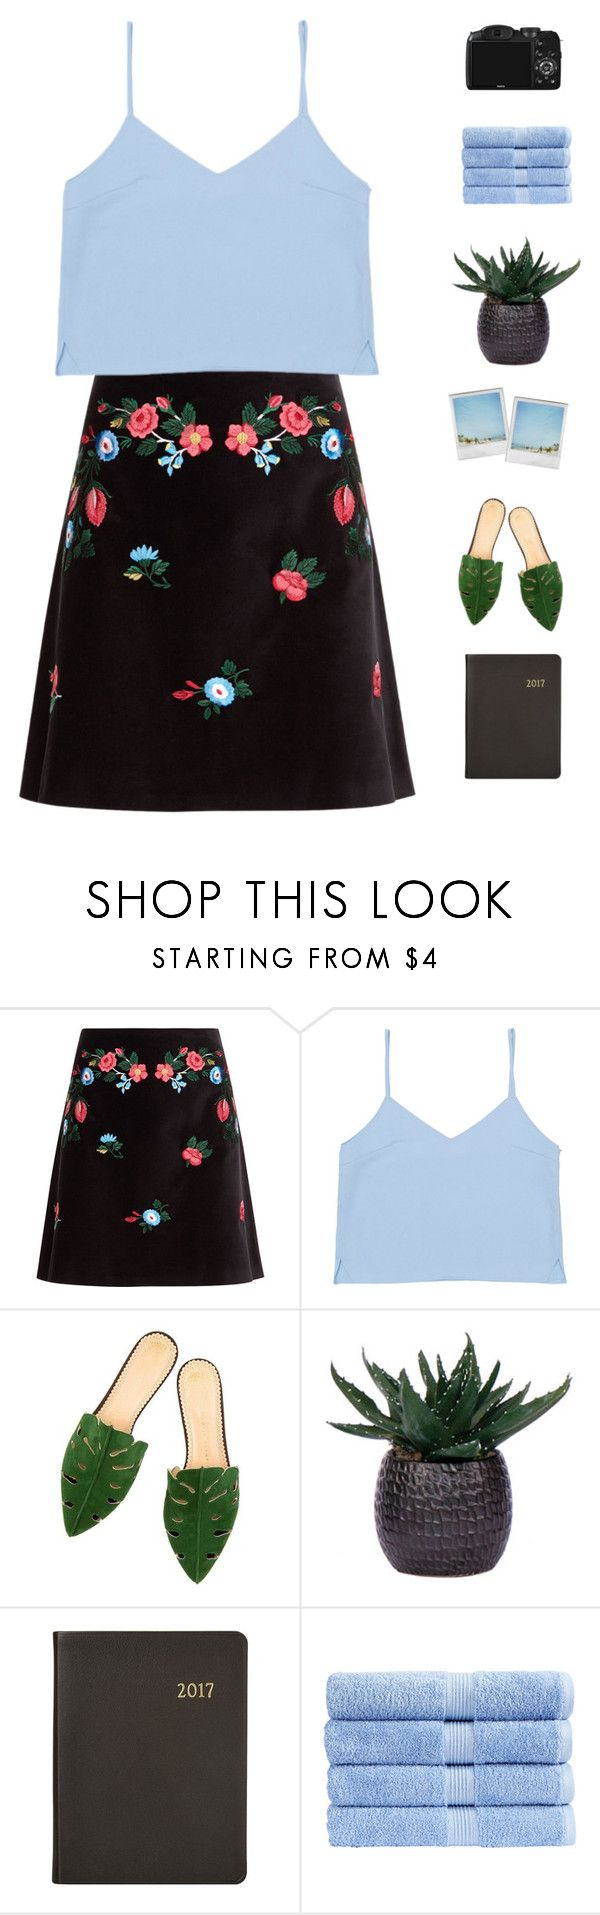 """""""Date night"""" by genesis129 ❤ liked on Polyvore featuring VIVETTA, Lux-Art Silks, Harrods, Polaroid, Christy, CO and vintage"""